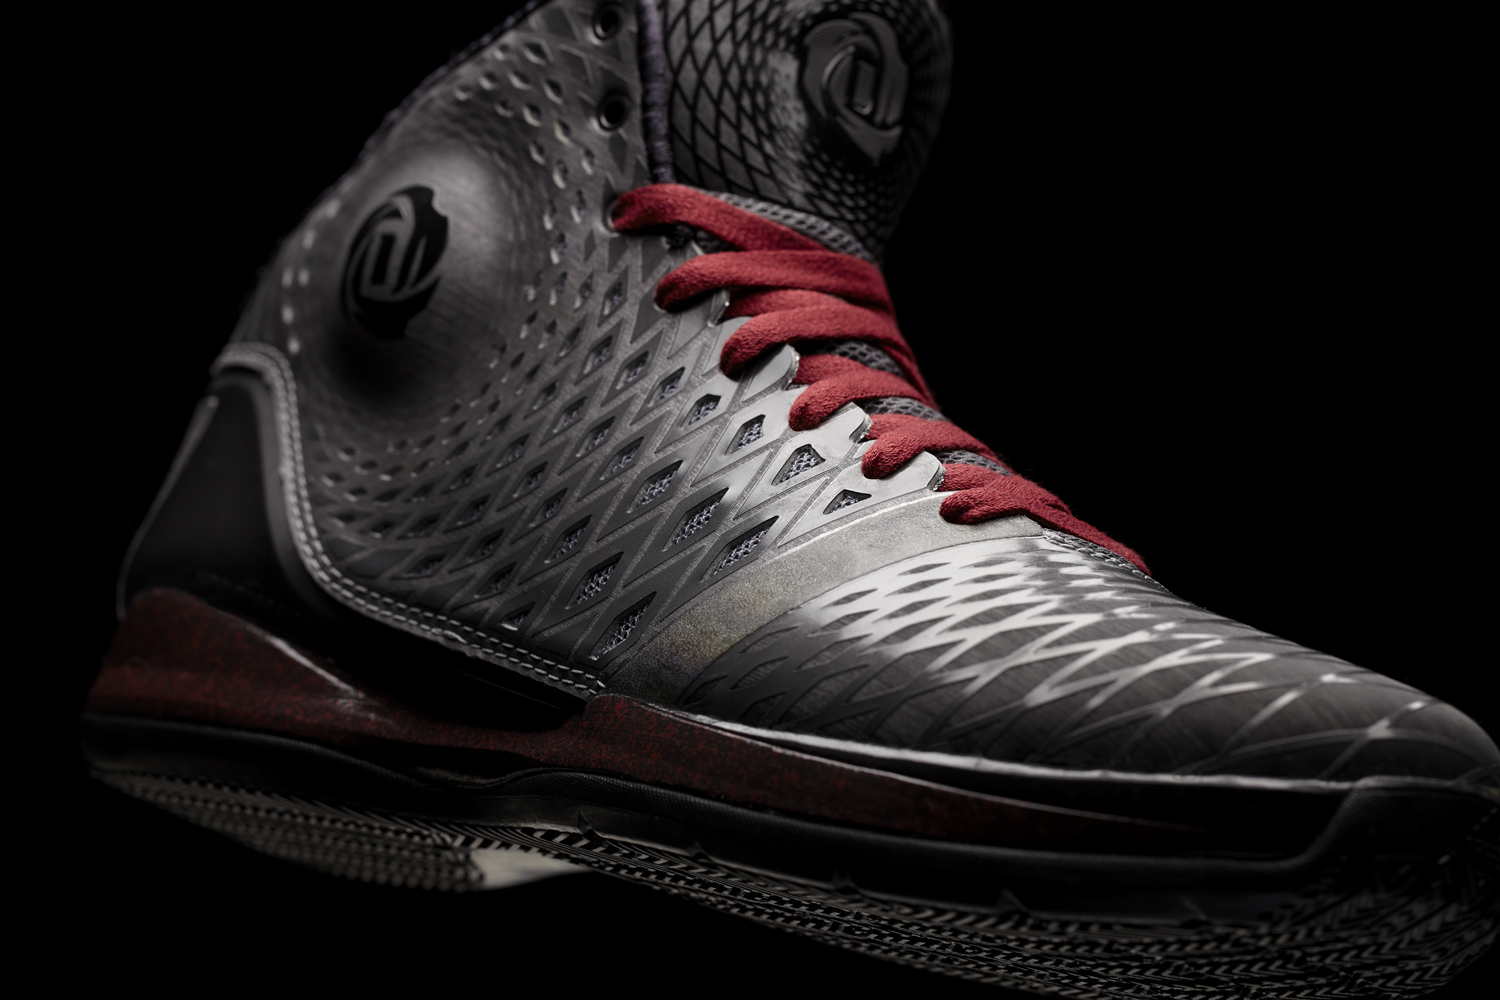 adidas unveils a new colorway of the d rose 35 slam